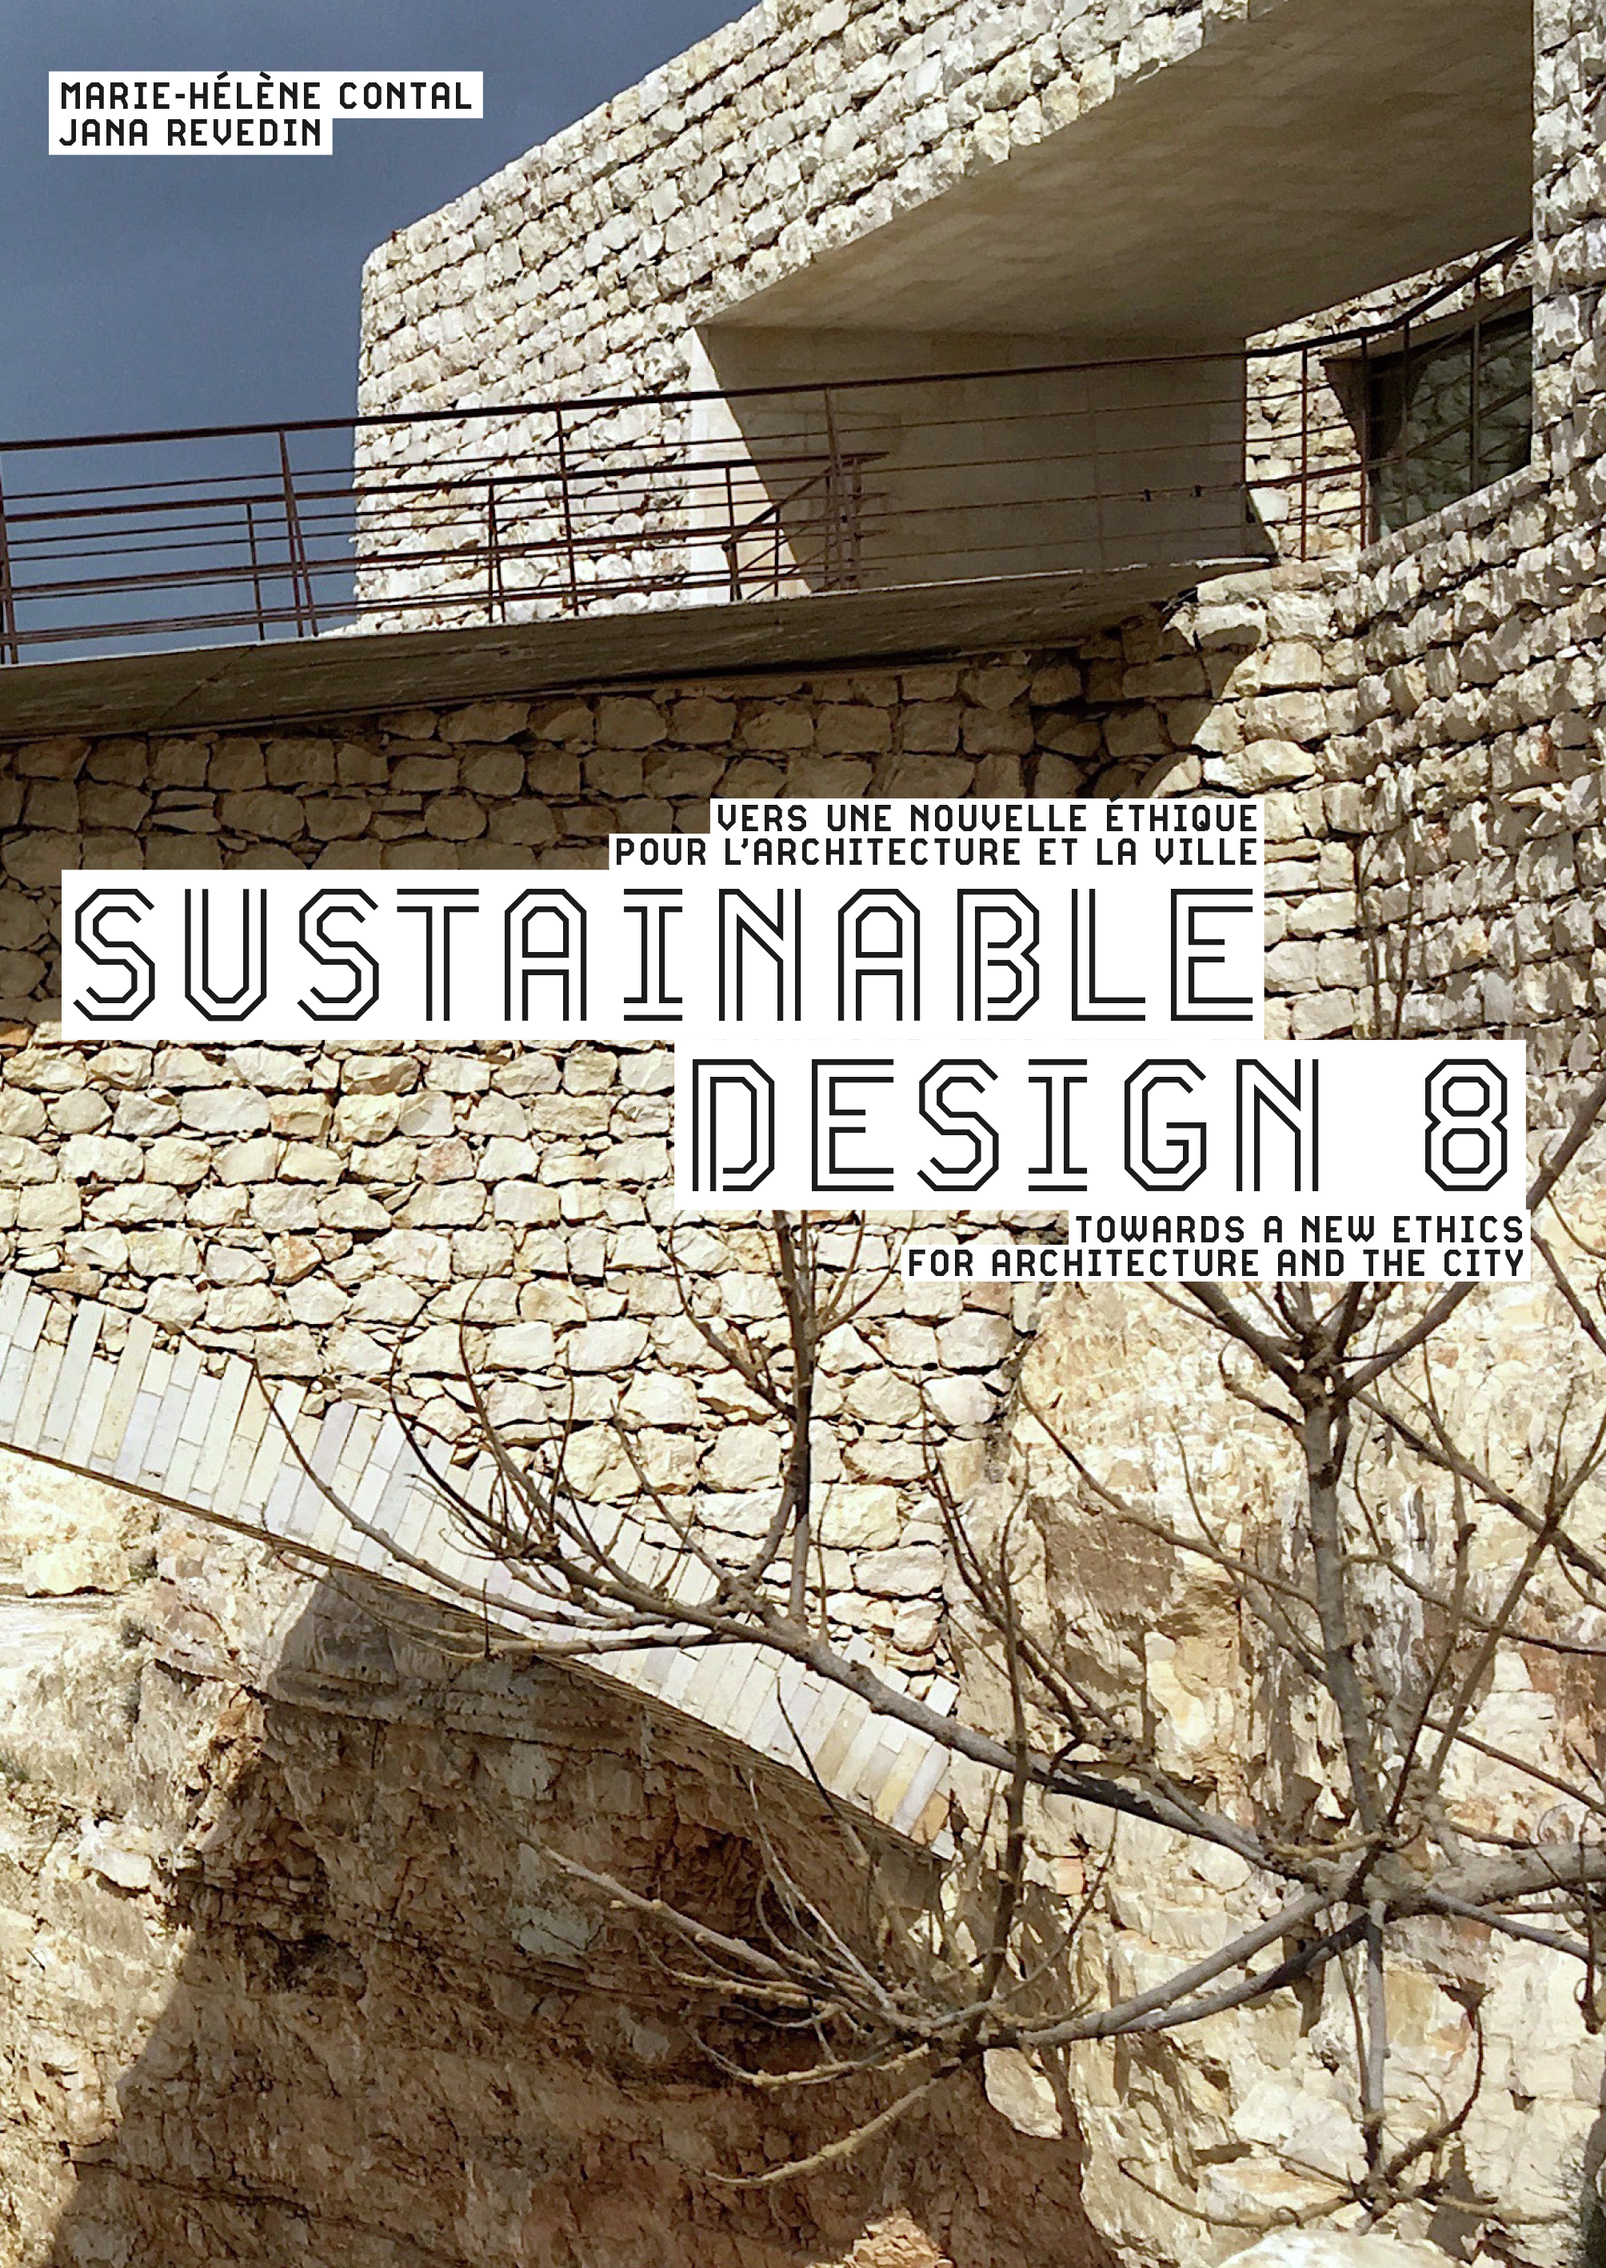 SUSTAINABLE DESIGN 8 - VERS UNE NOUVELLE ETHIQUE POUR L'ARCHTECTURE ET LA VILLE/TOWARDS A NEW ETHICS